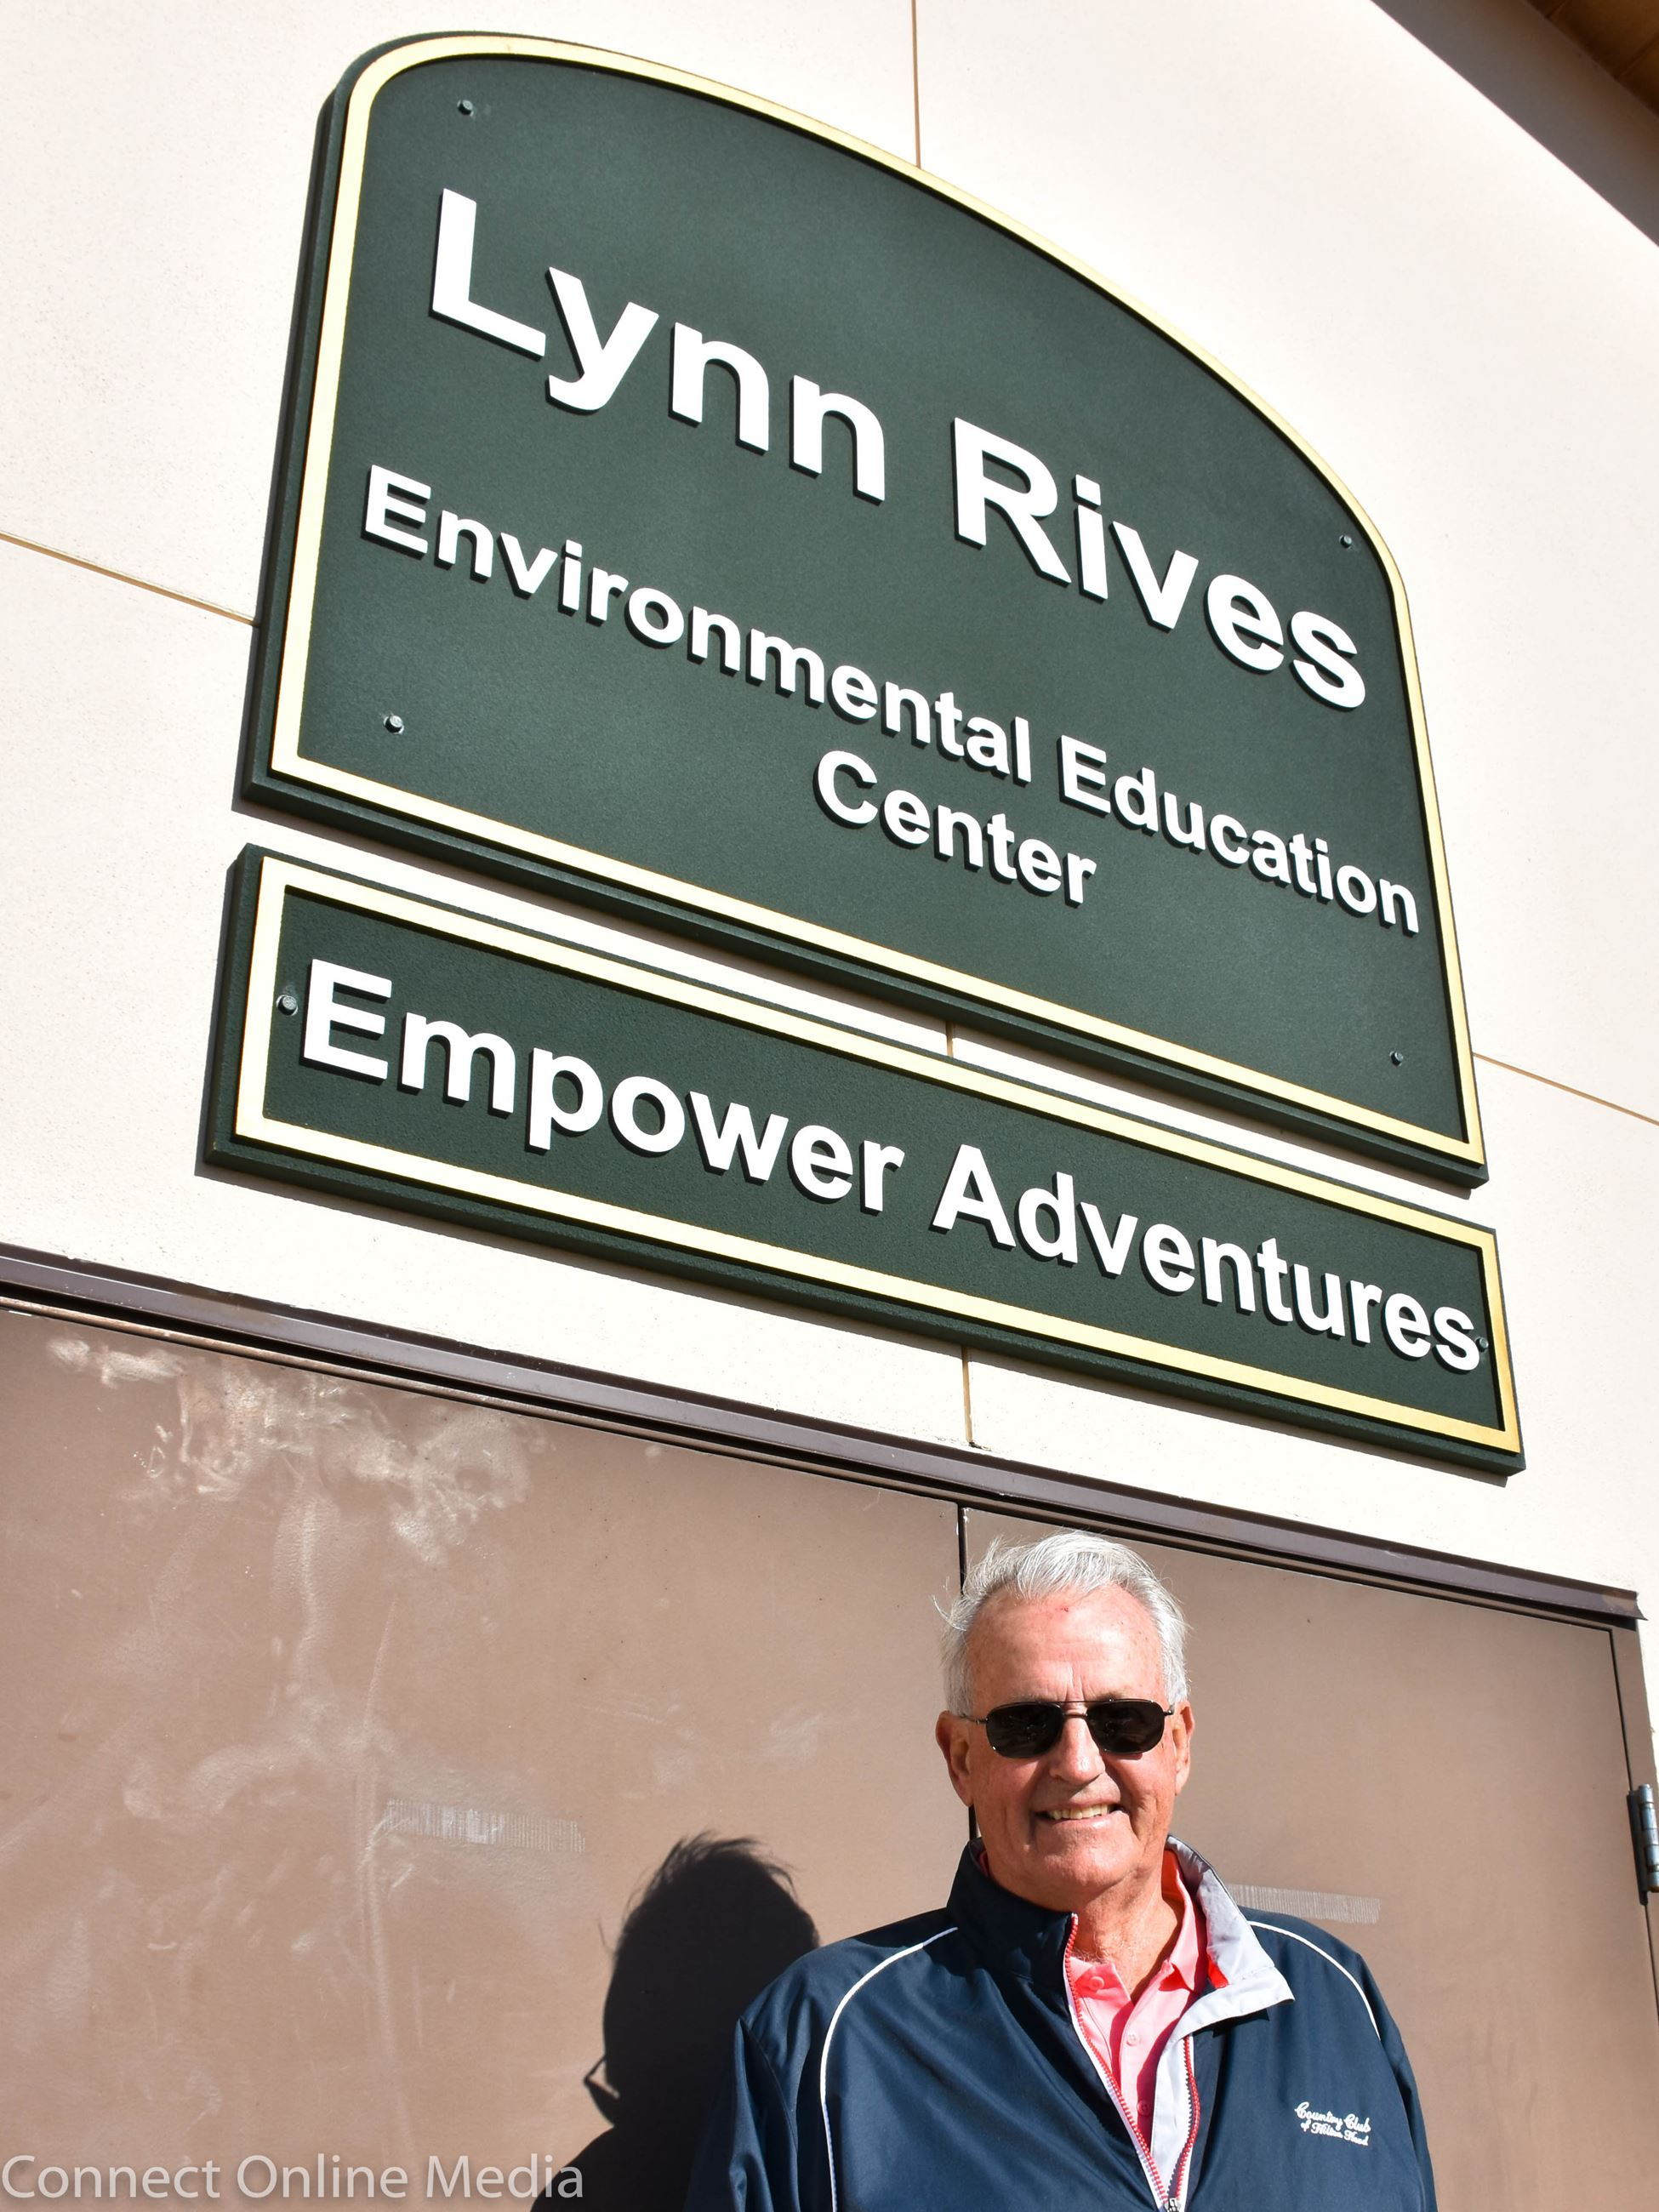 Lynn-Rives Environmental Education Center